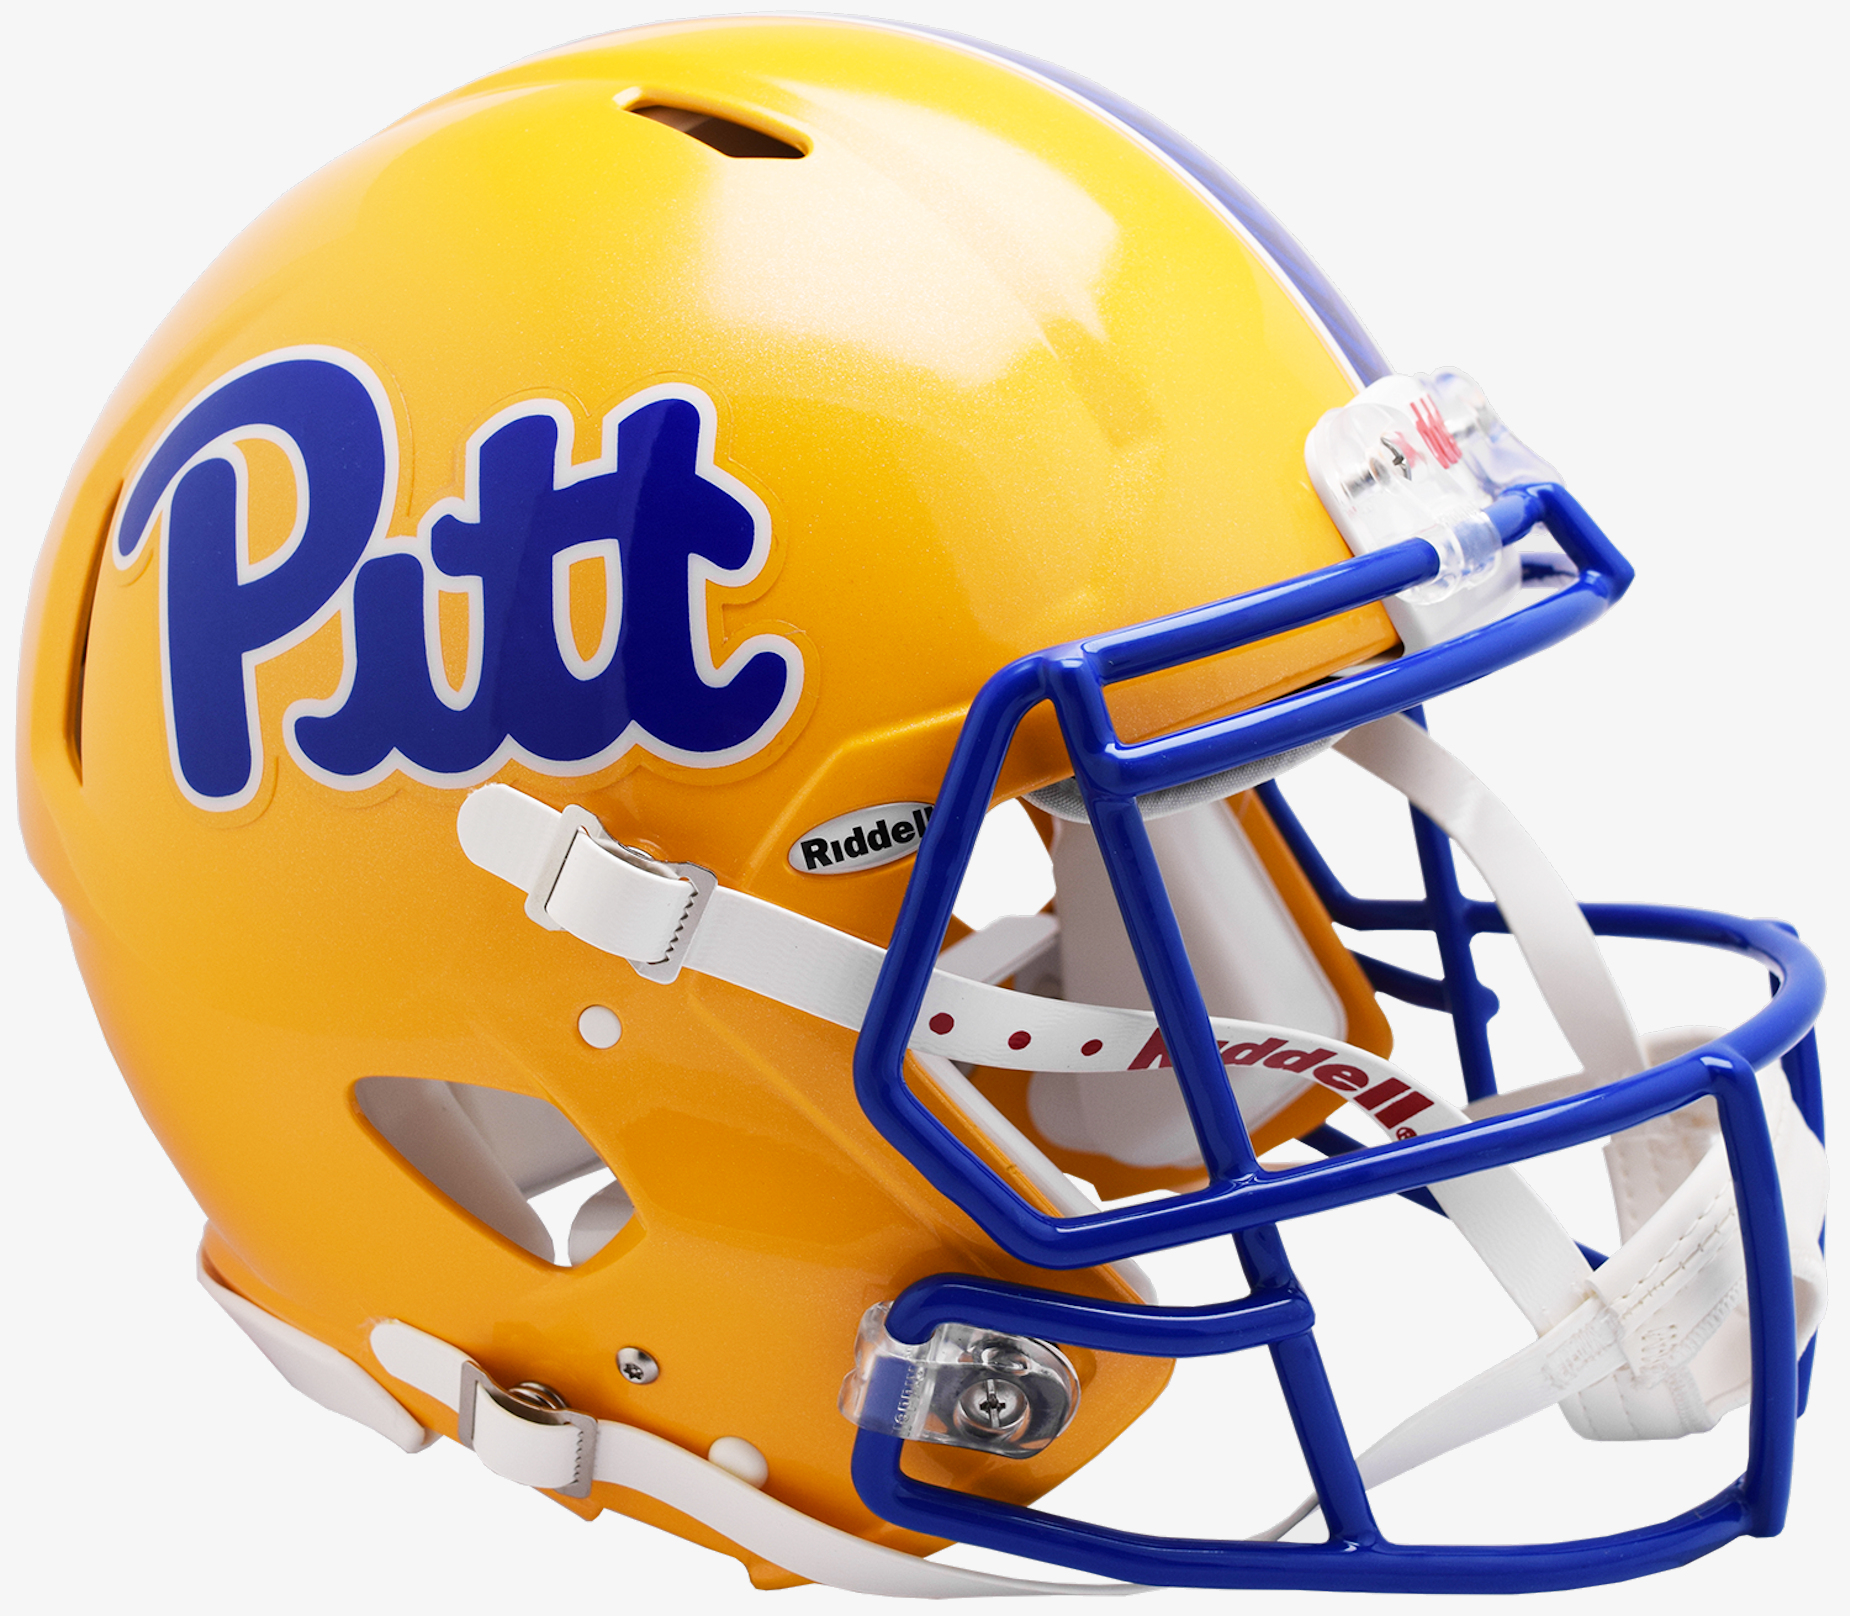 Pittsburgh Panthers Speed Football Helmet <B>2019 Gold</B>